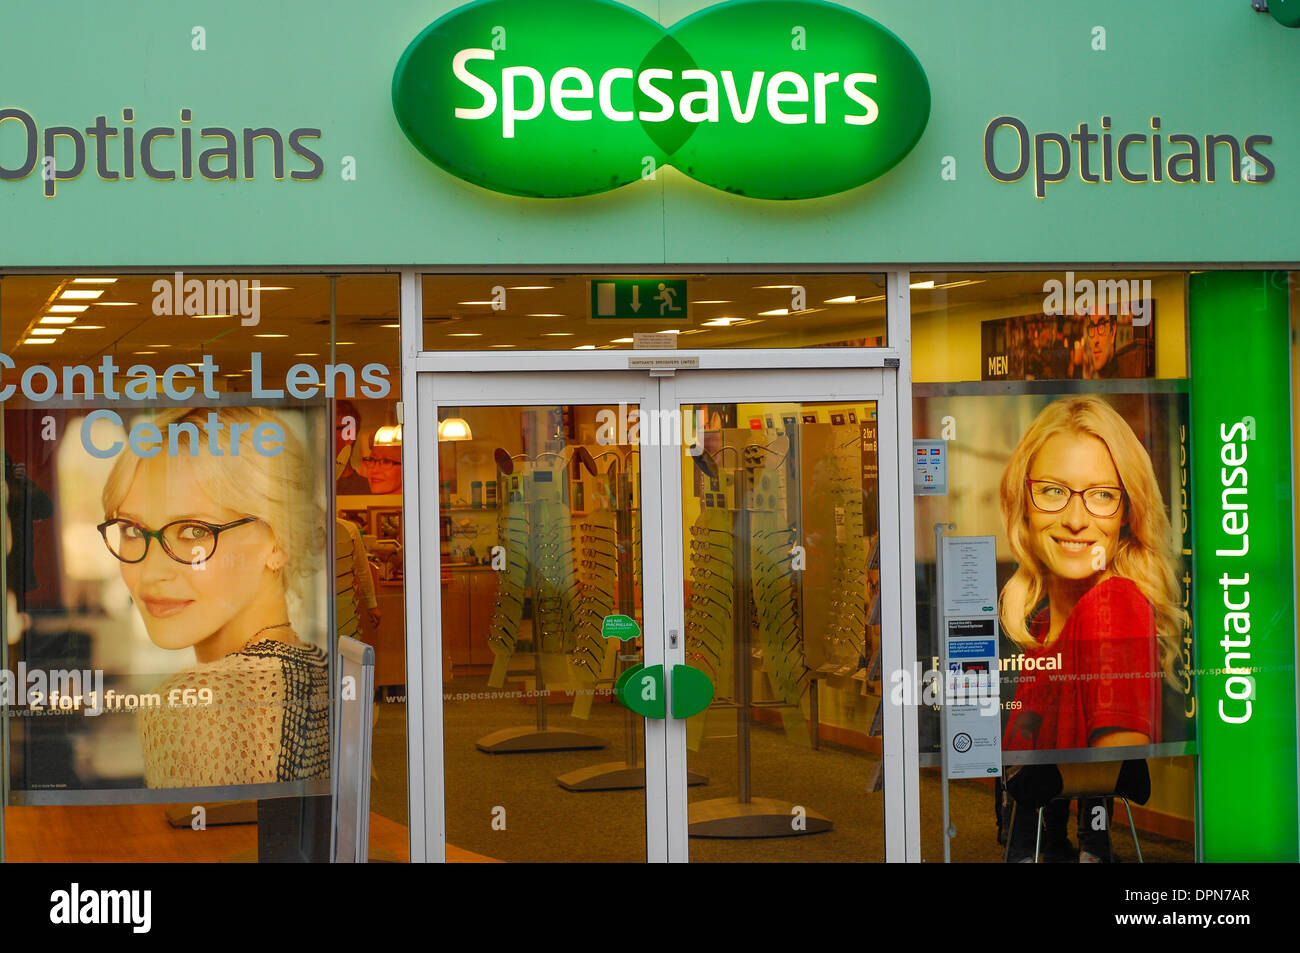 Specsavers shop front Stock Photo